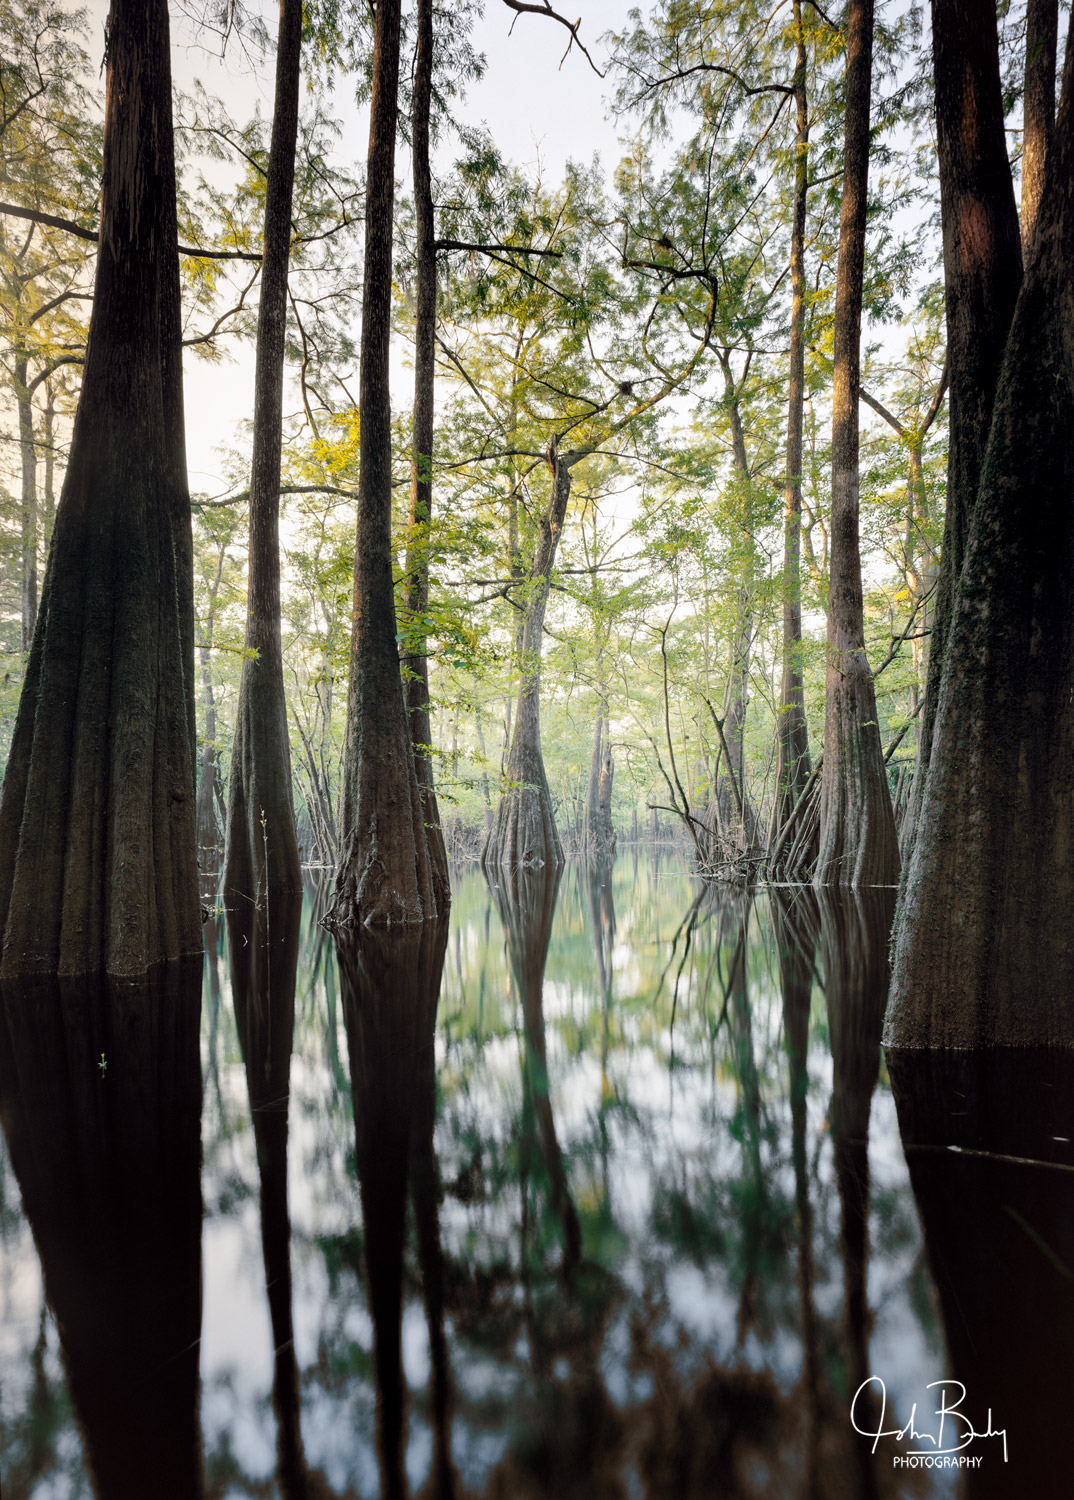 Florida, high springs district, ancient cypress, Suwannee, Santa Fe, large format film photography, wooden view camera